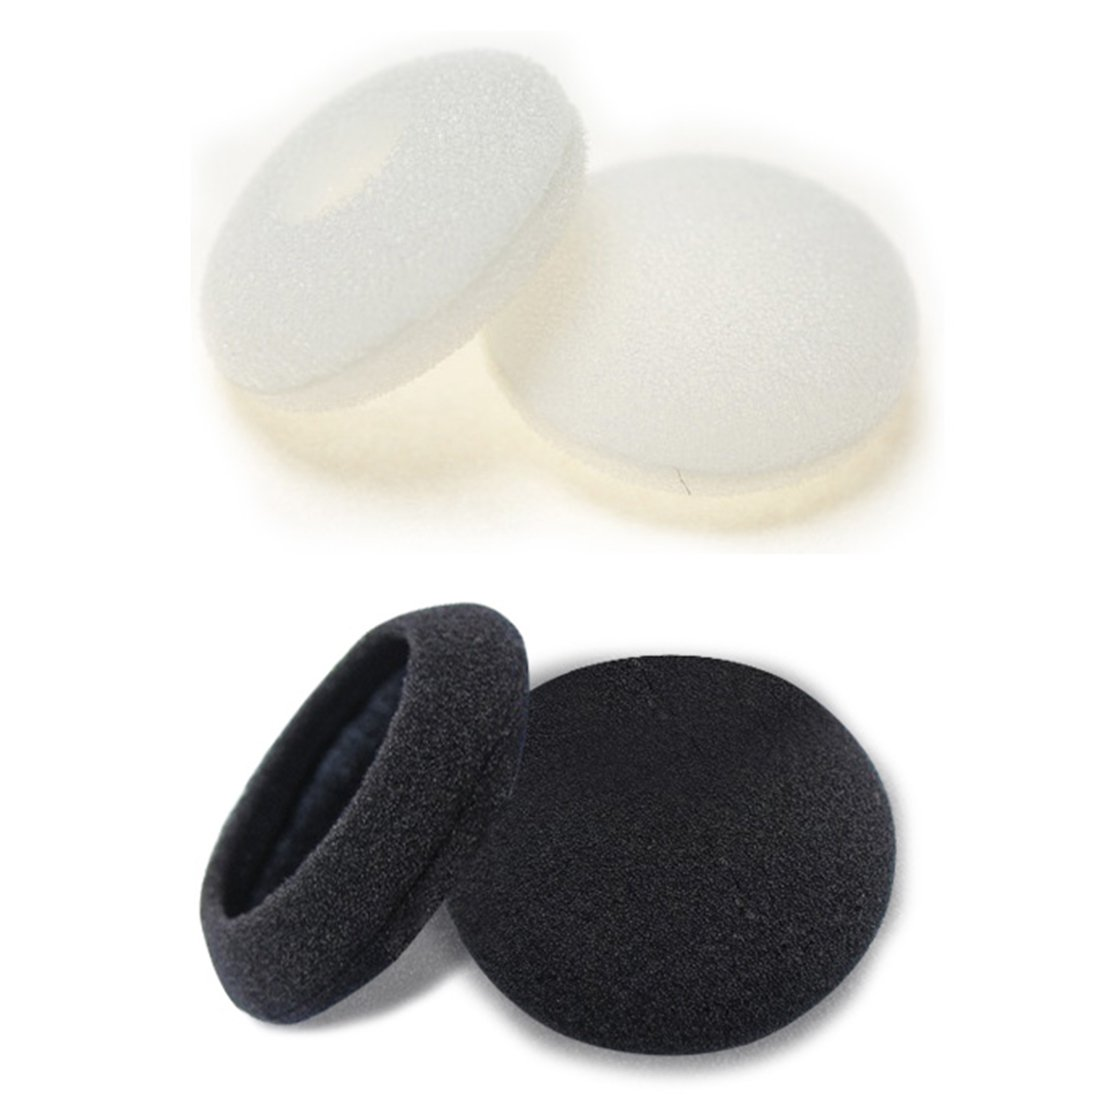 uxcell 100 Pcs Black Sponge Earbud Headphone Cap Ear Pads Cover Replacement